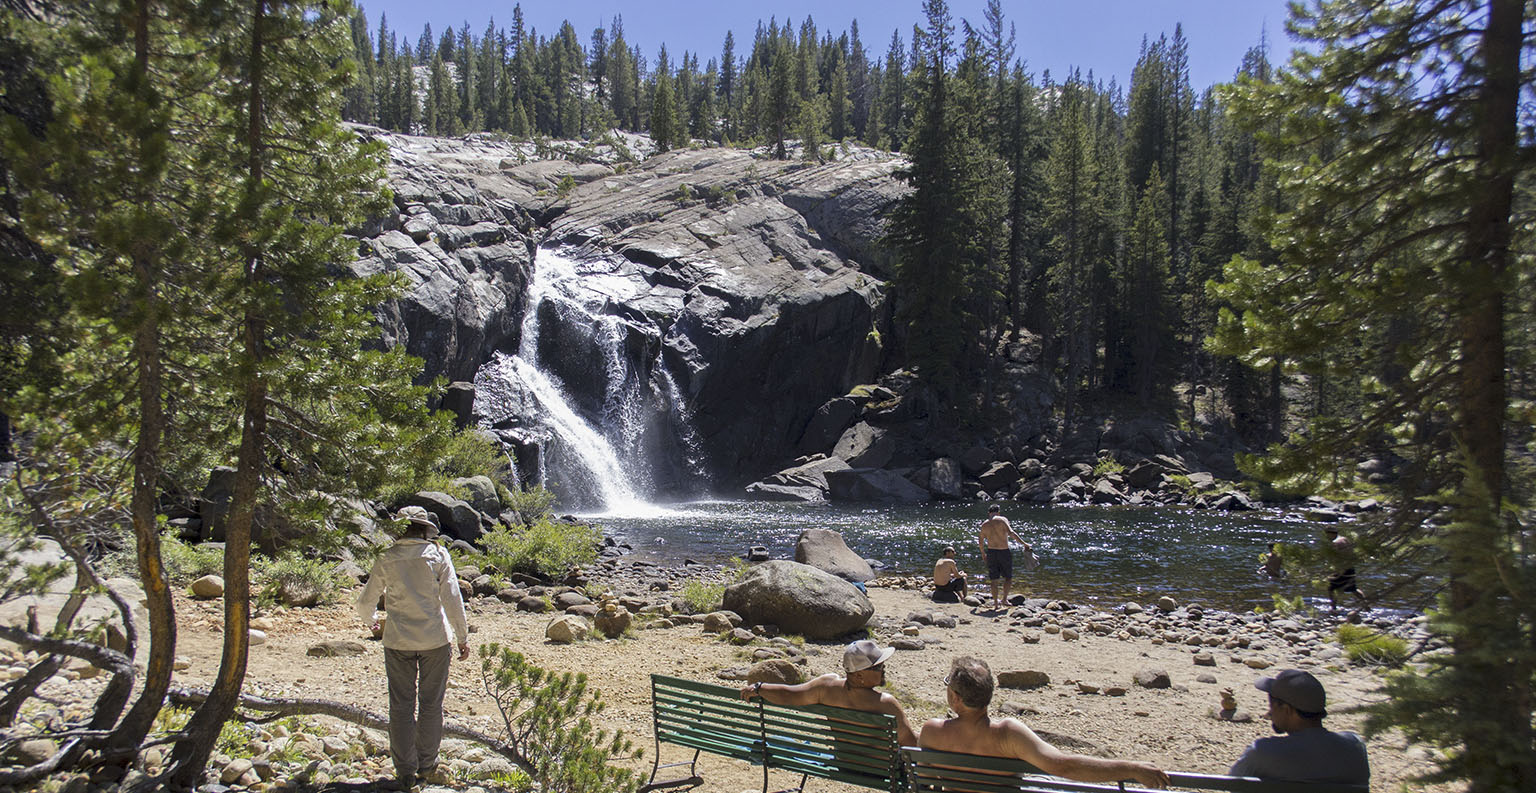 White Cascade and the beach at Glen Aulin